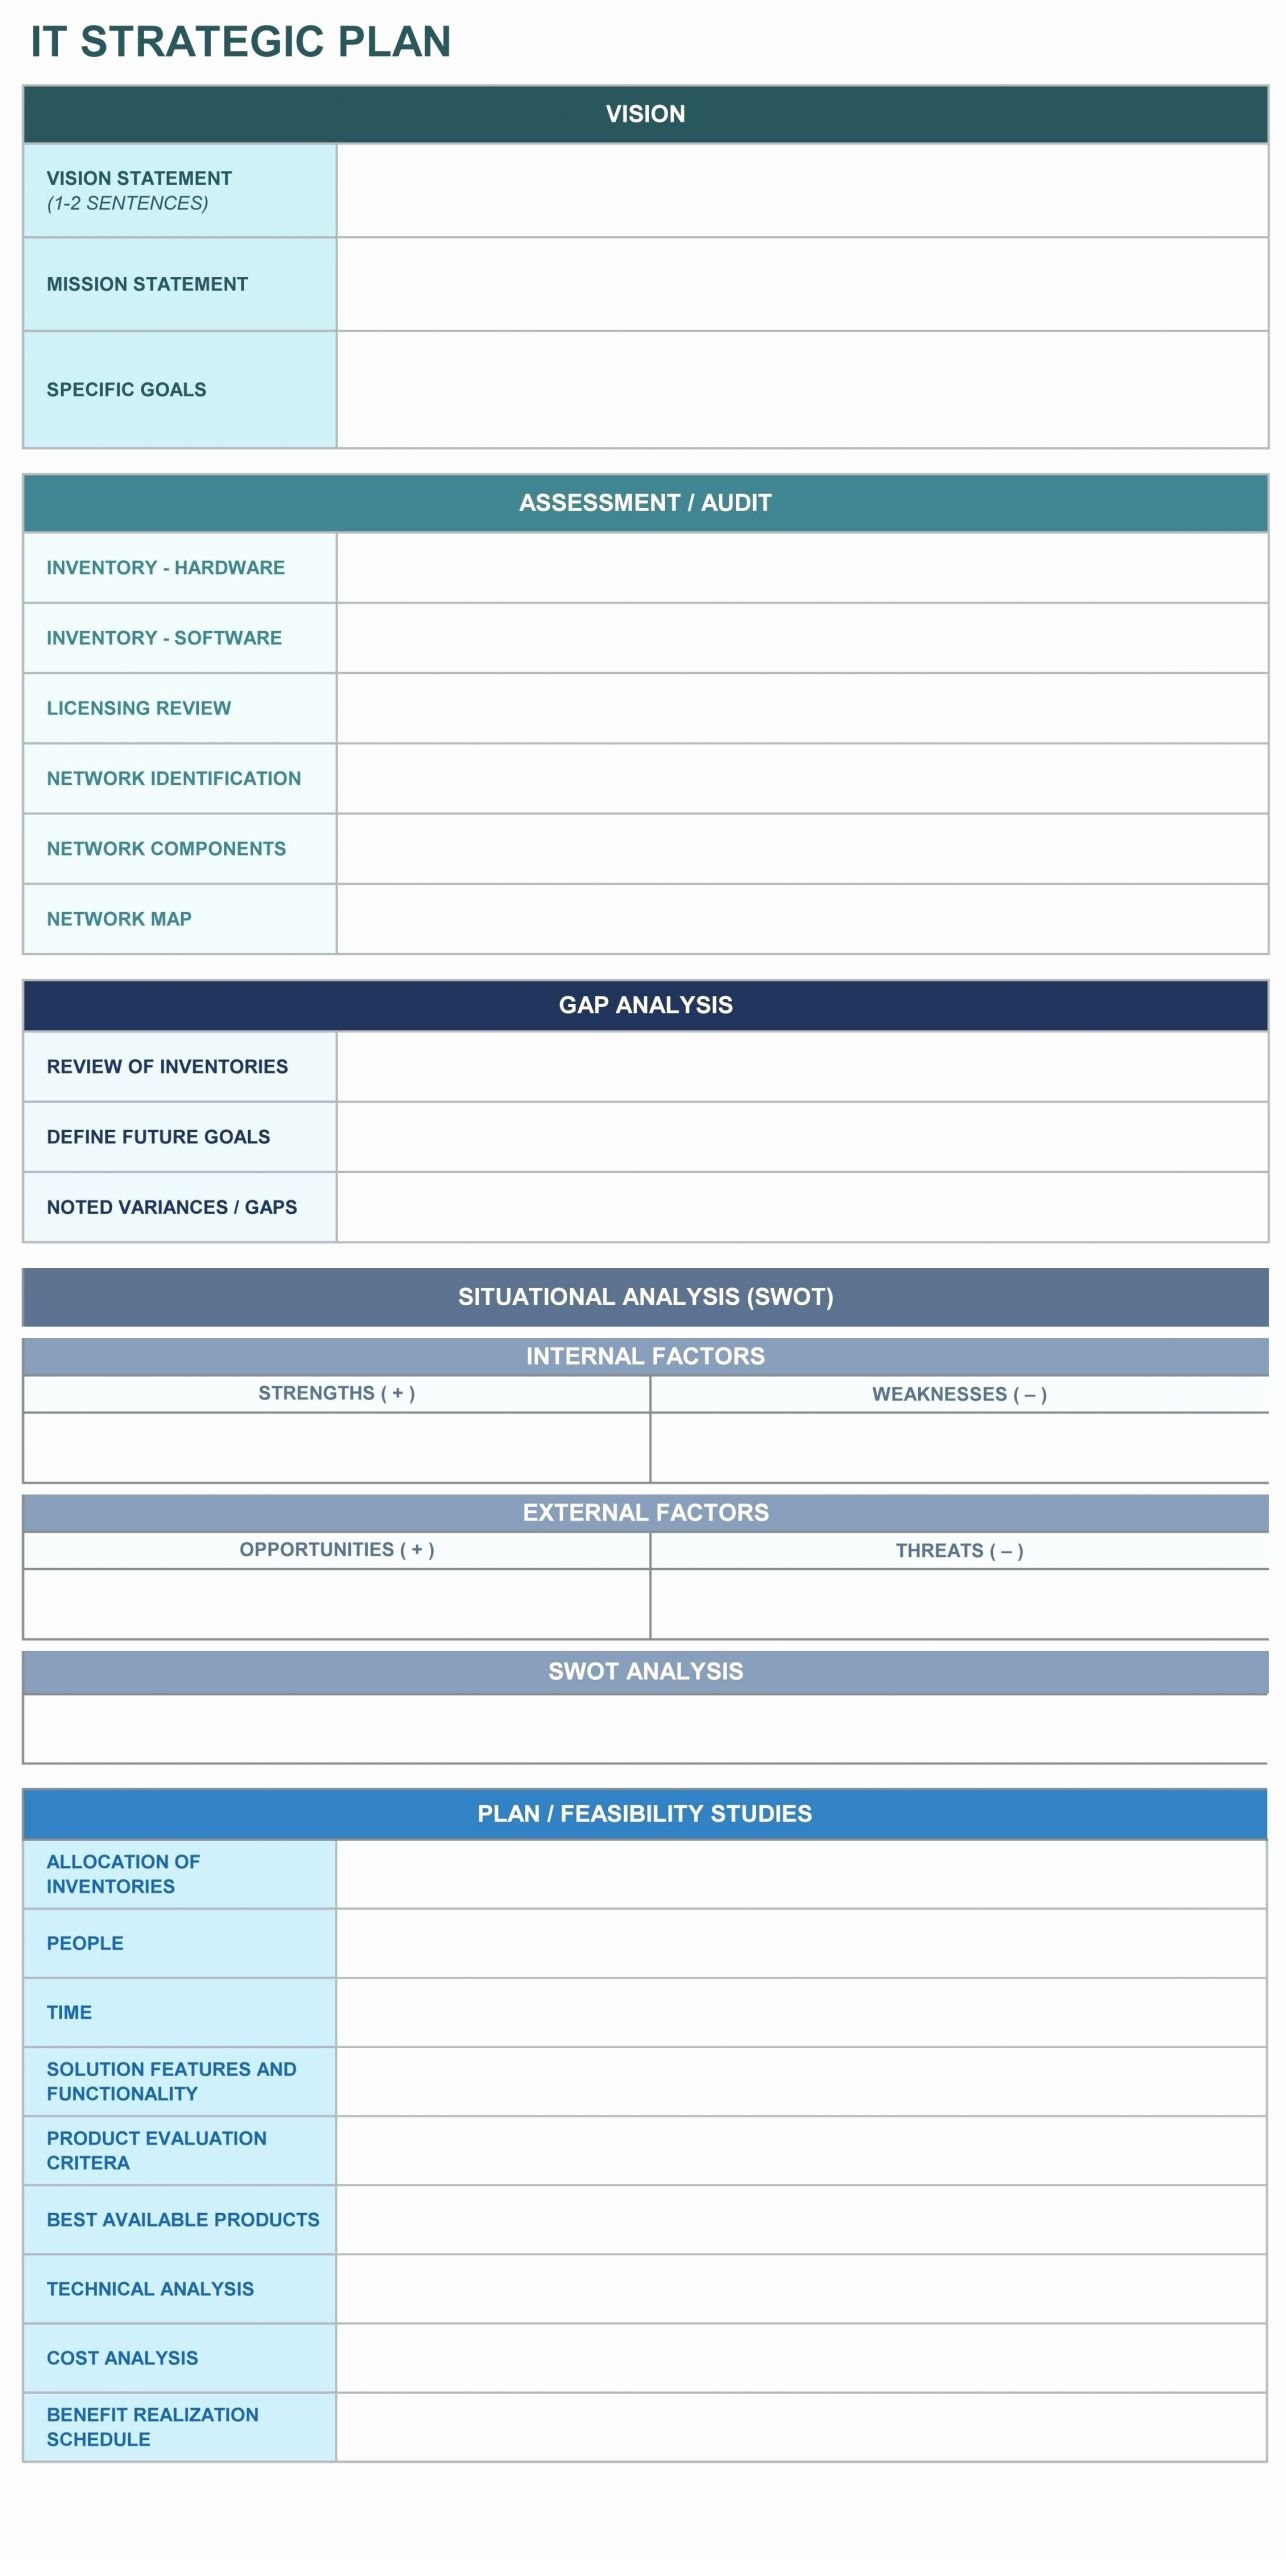 Construction Schedule Of Values Excel Lovely Construction Project Schedule Template Excel